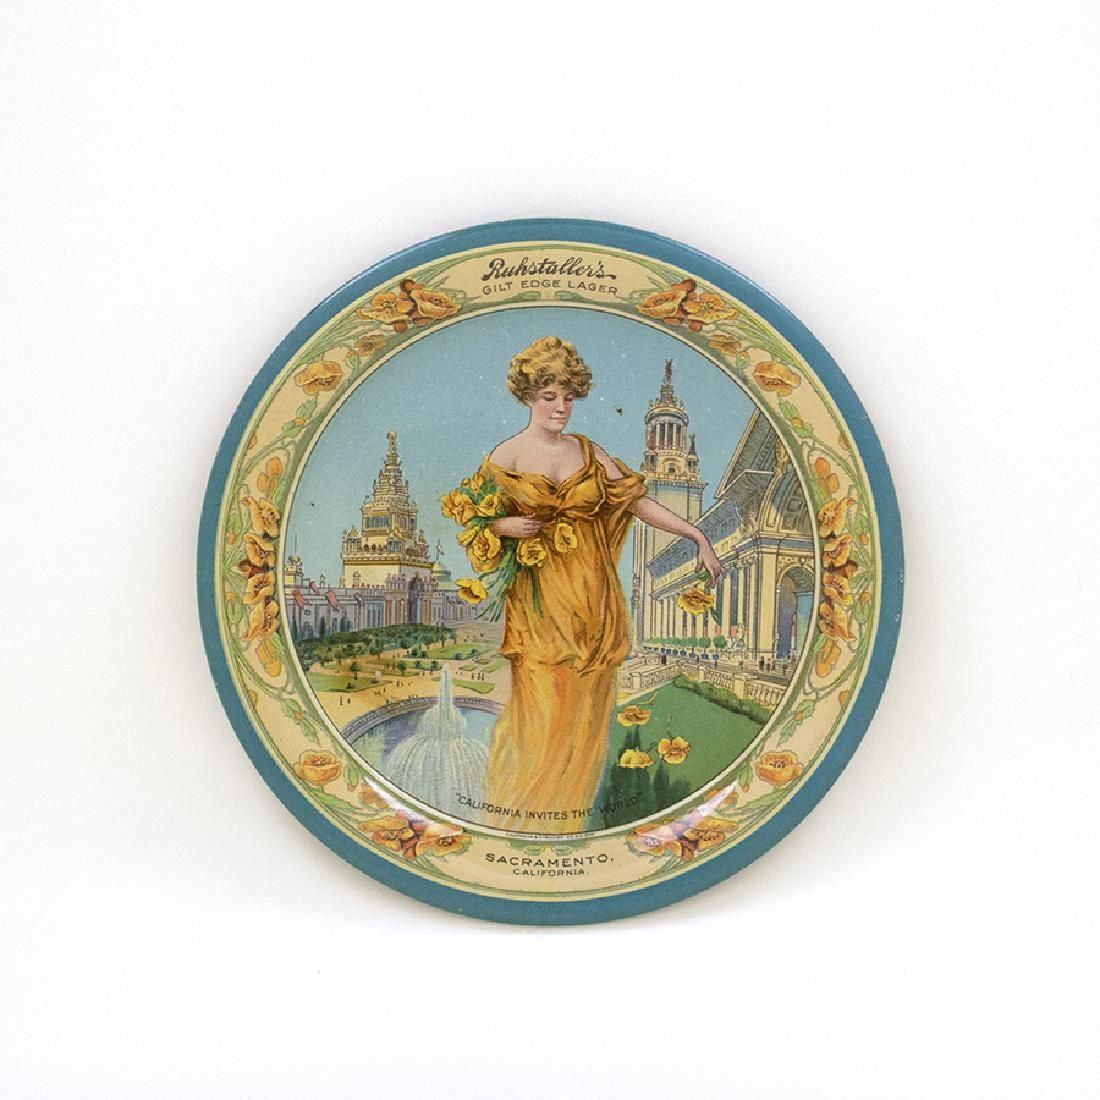 Ruhstallers Gilt Edge Lager Expo Tip Tray